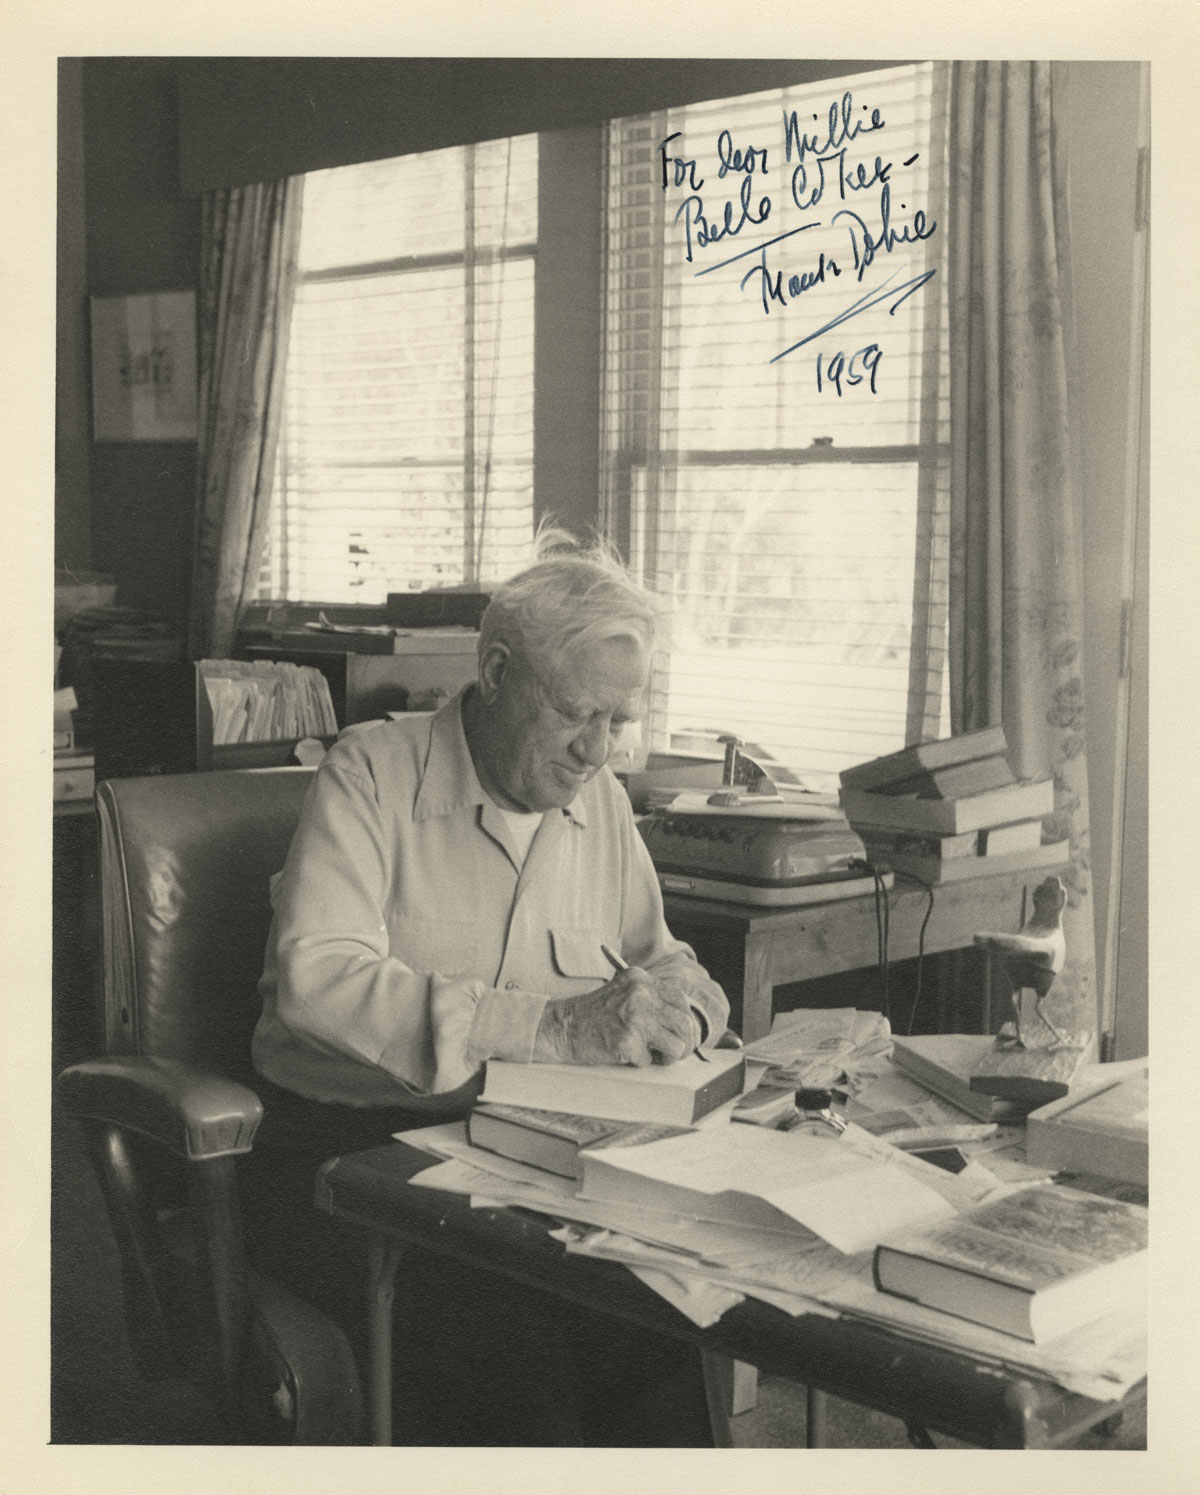 C. H. Dykeman, Photograph of J. Frank Dobie at his desk, 1959. Note the wooden roadrunner on his desk and the open file cabinet drawer showing folders of papers.